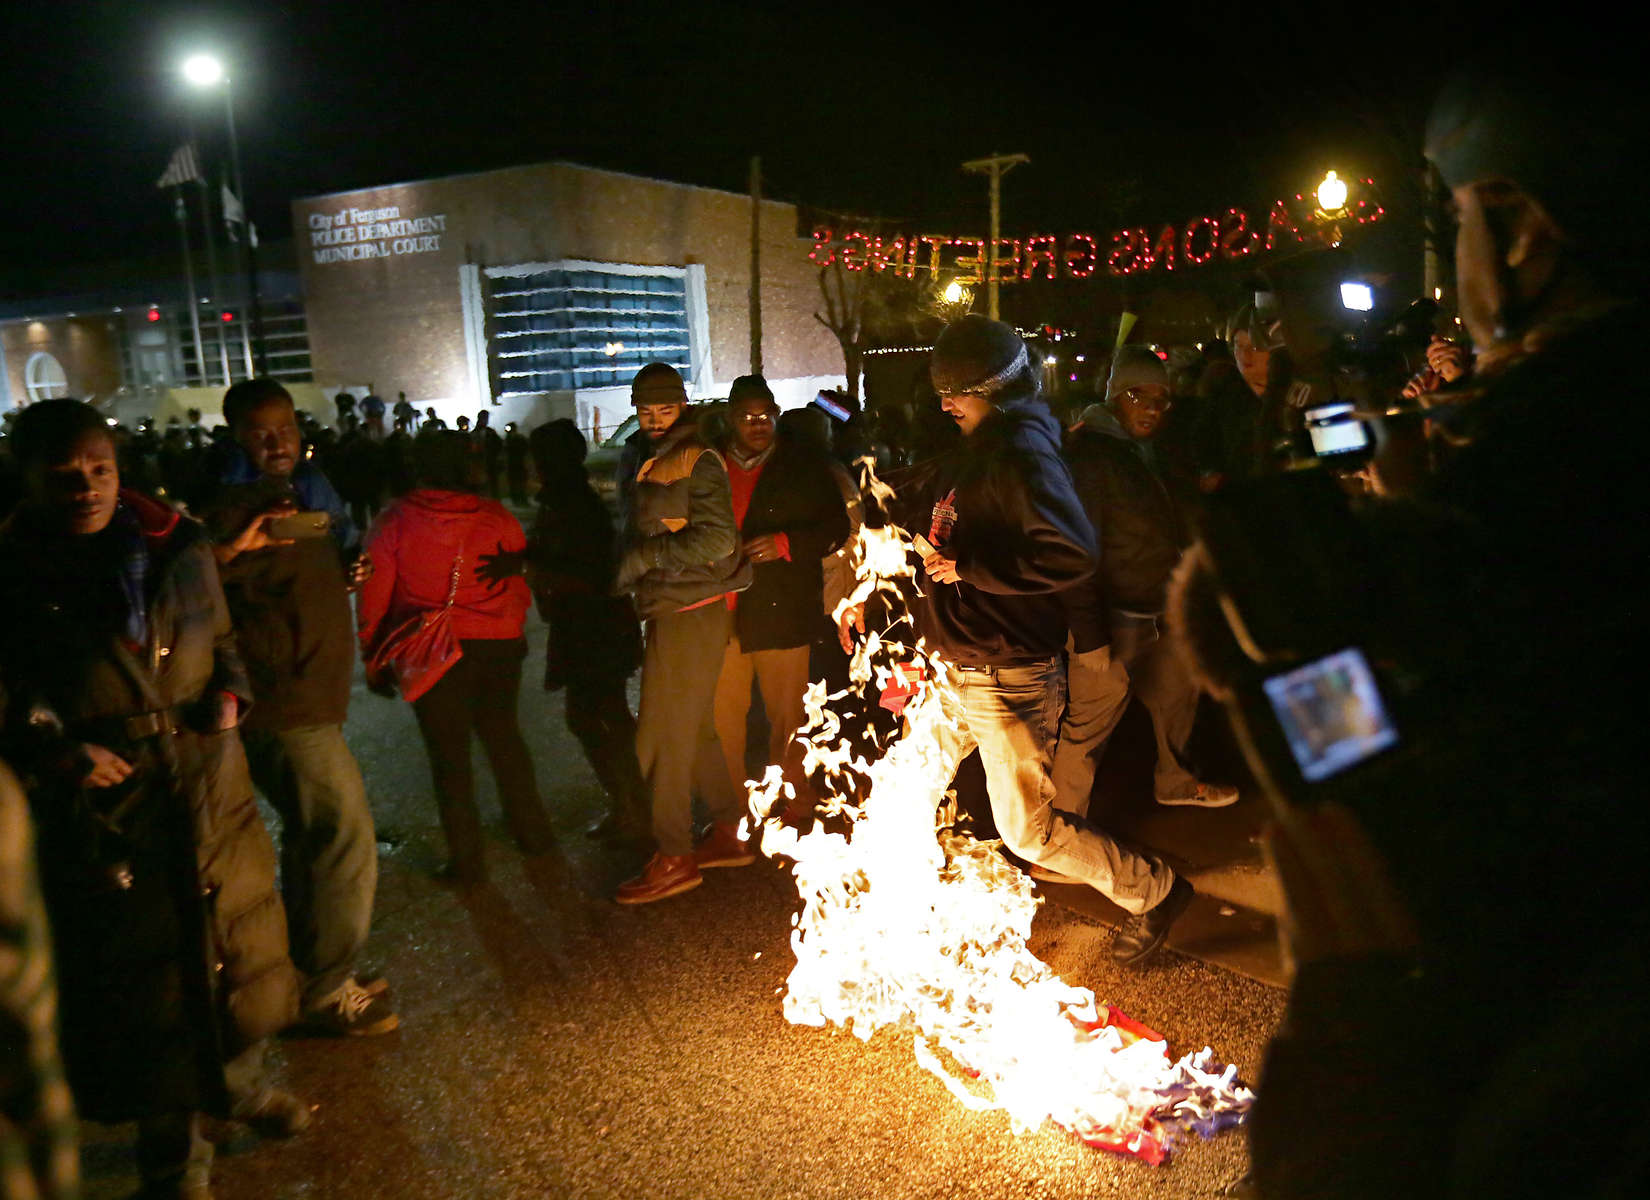 A protester lights a flag on fire outside the Ferguson police department on Saturday, Nov. 29, 2014.  The protester needed to add an accelerant to the flag to get it to burn when they he was unable to get it to ignite with just a lighter.Photo By David Carson, dcarson@post-dispatch.com